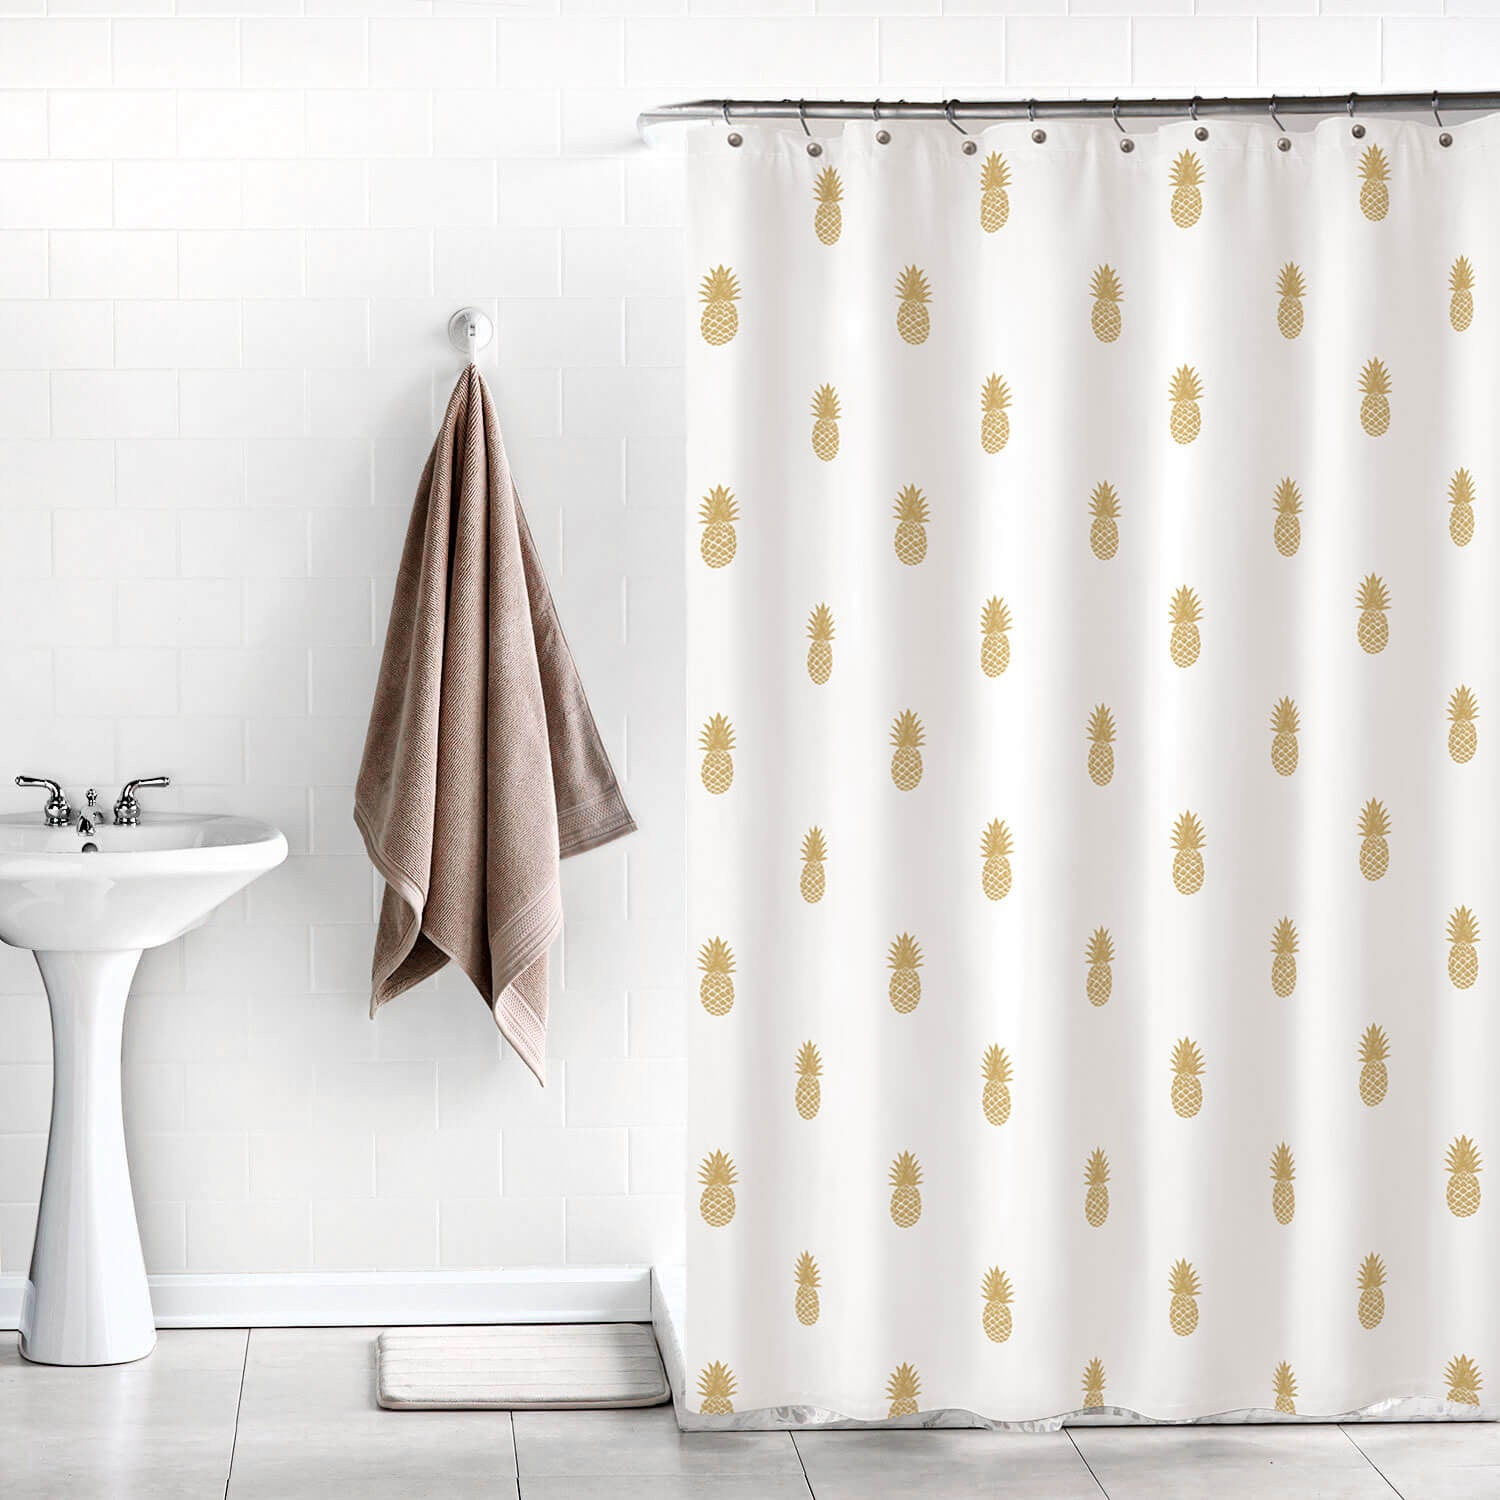 Throw pillows cards mugs shower curtains - Golden Pineapple Shower Curtain